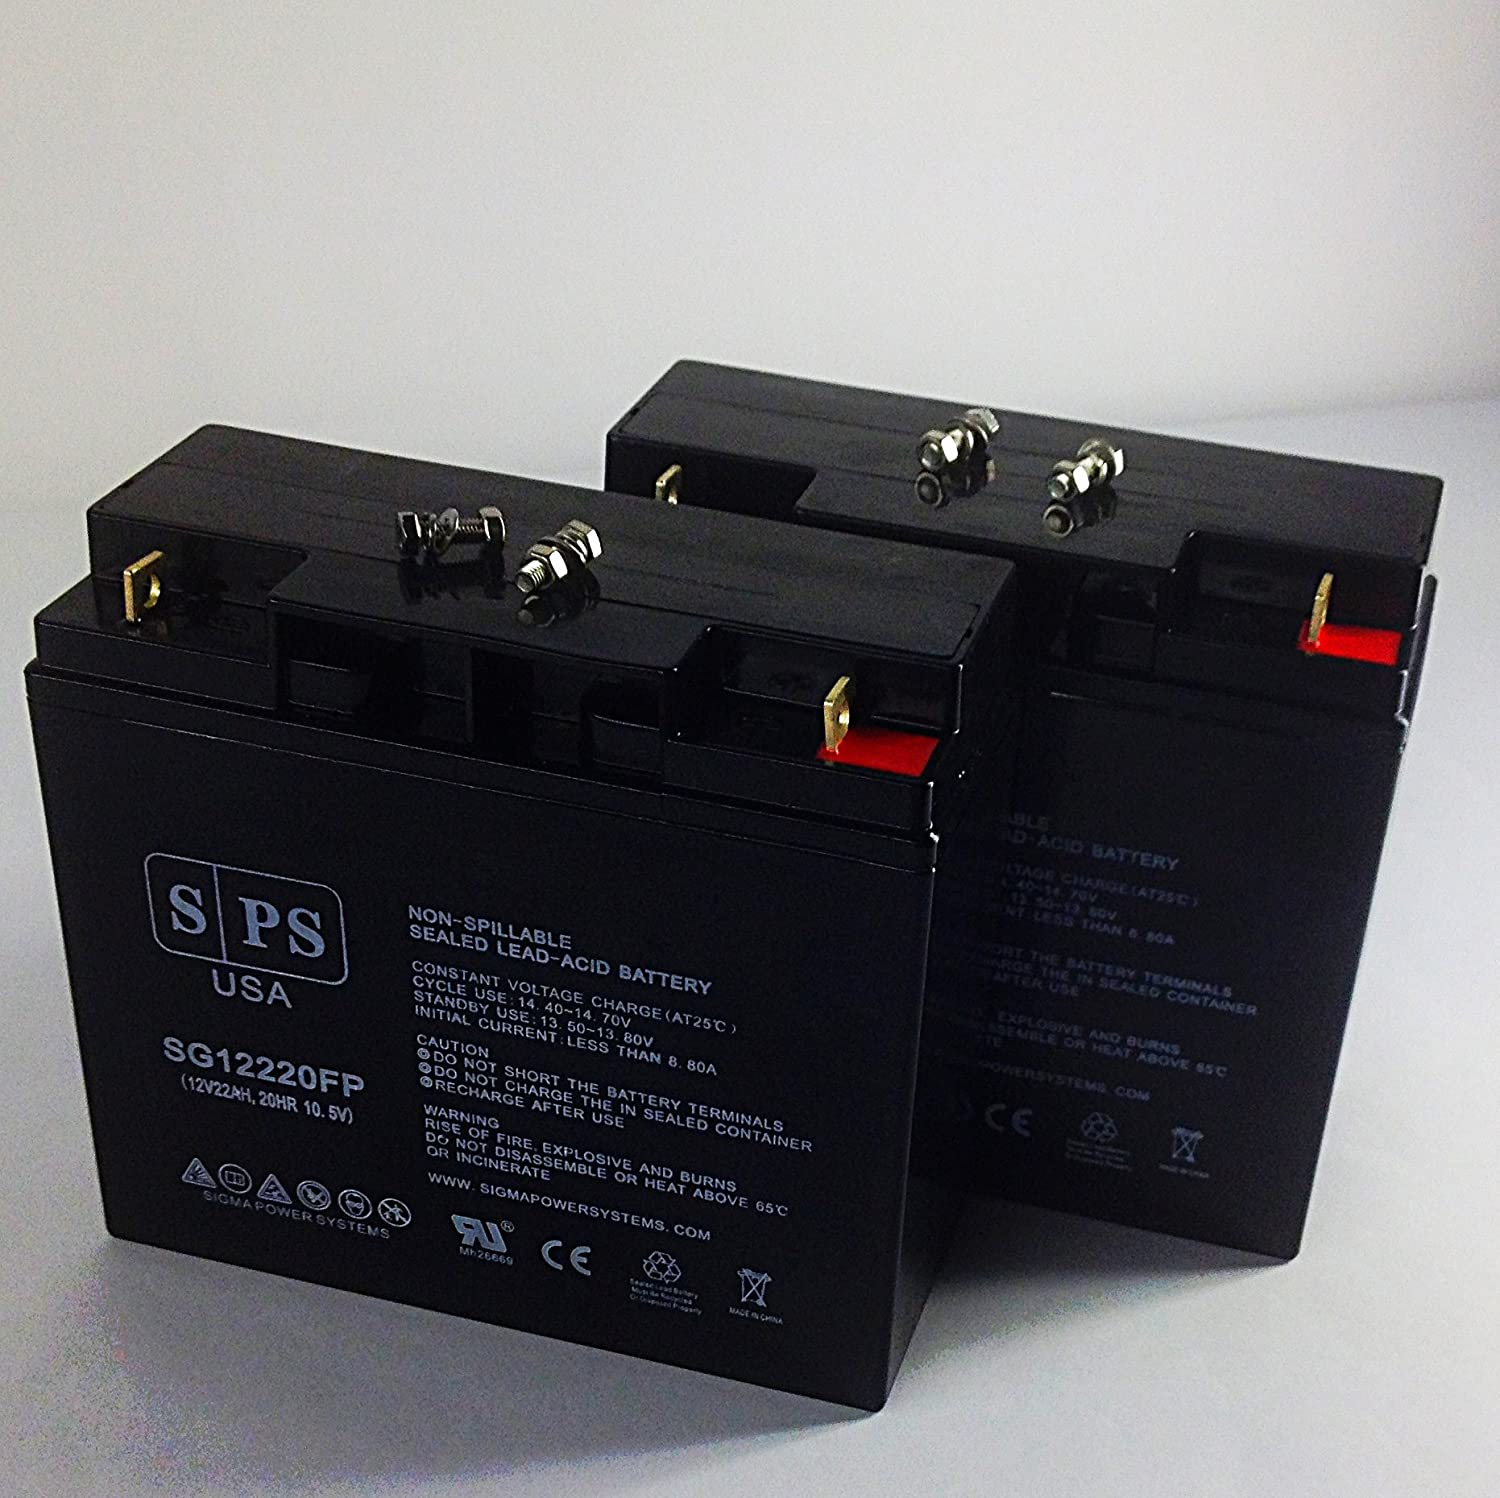 SPS Brand 12V 22Ah Replacement Battery 12 5 ☆ popular for Scooter Max 50% OFF BB BP17